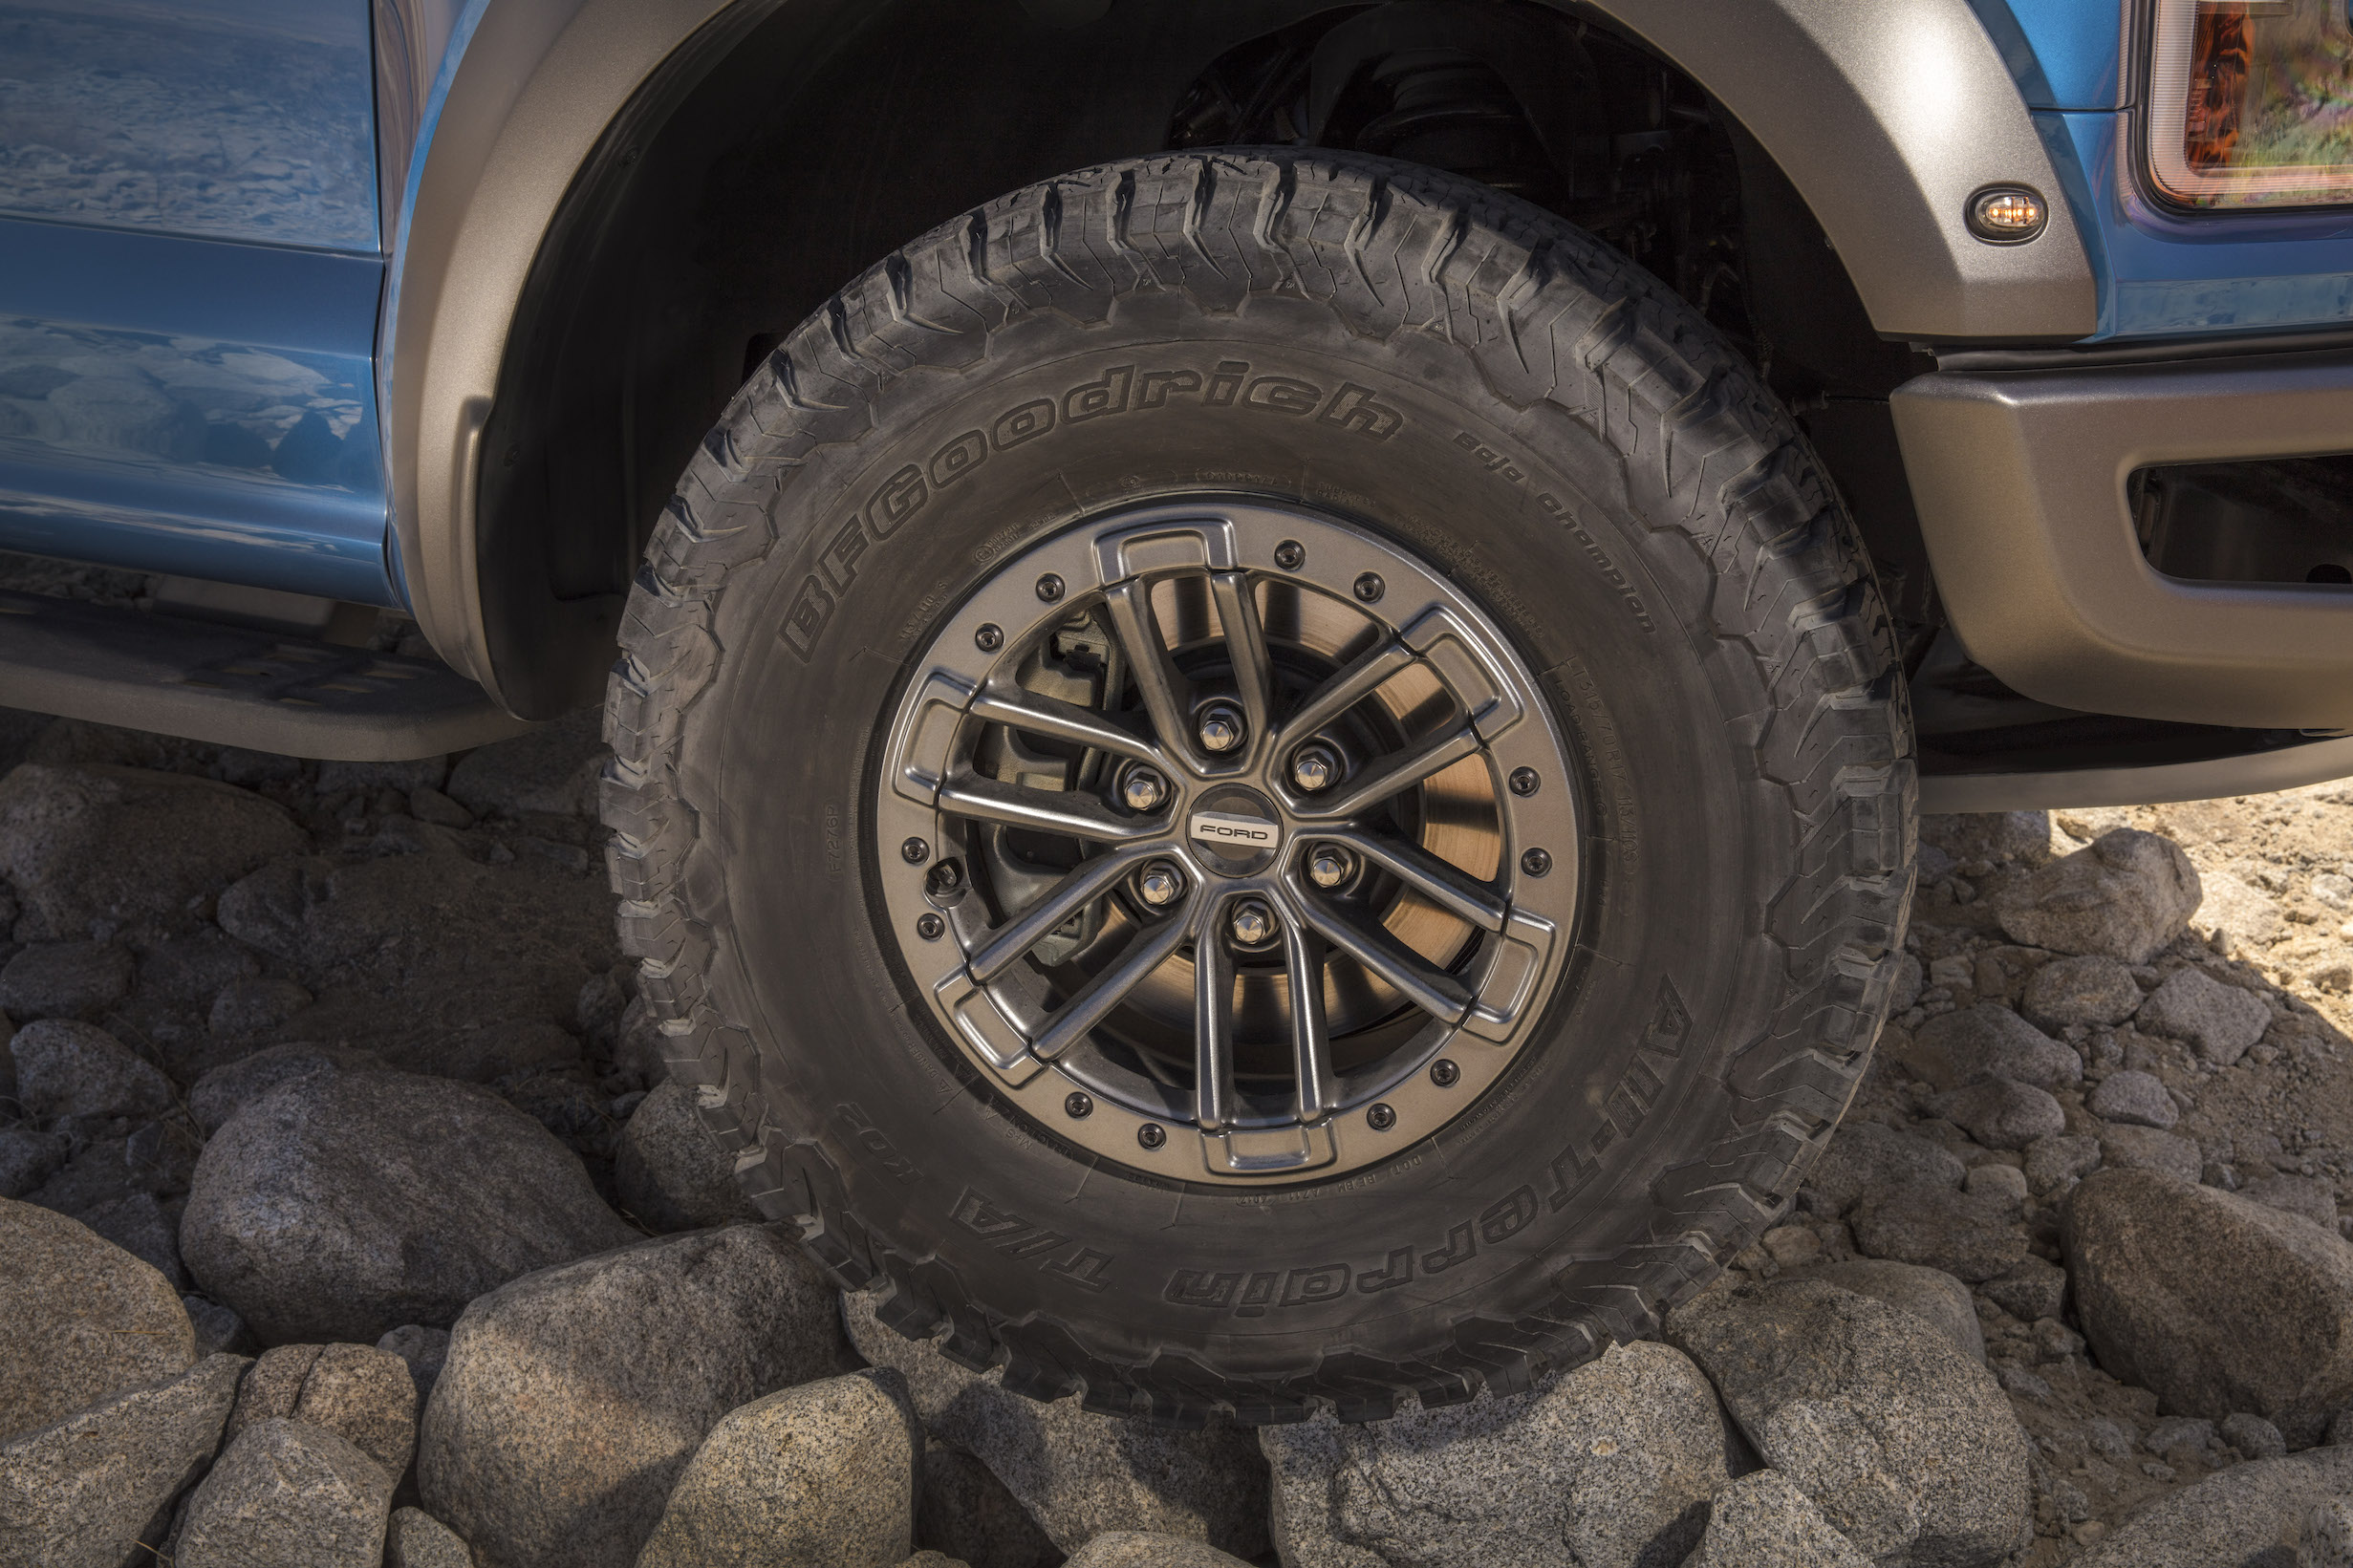 2019 Ford F-150 Raptor tires on rocks